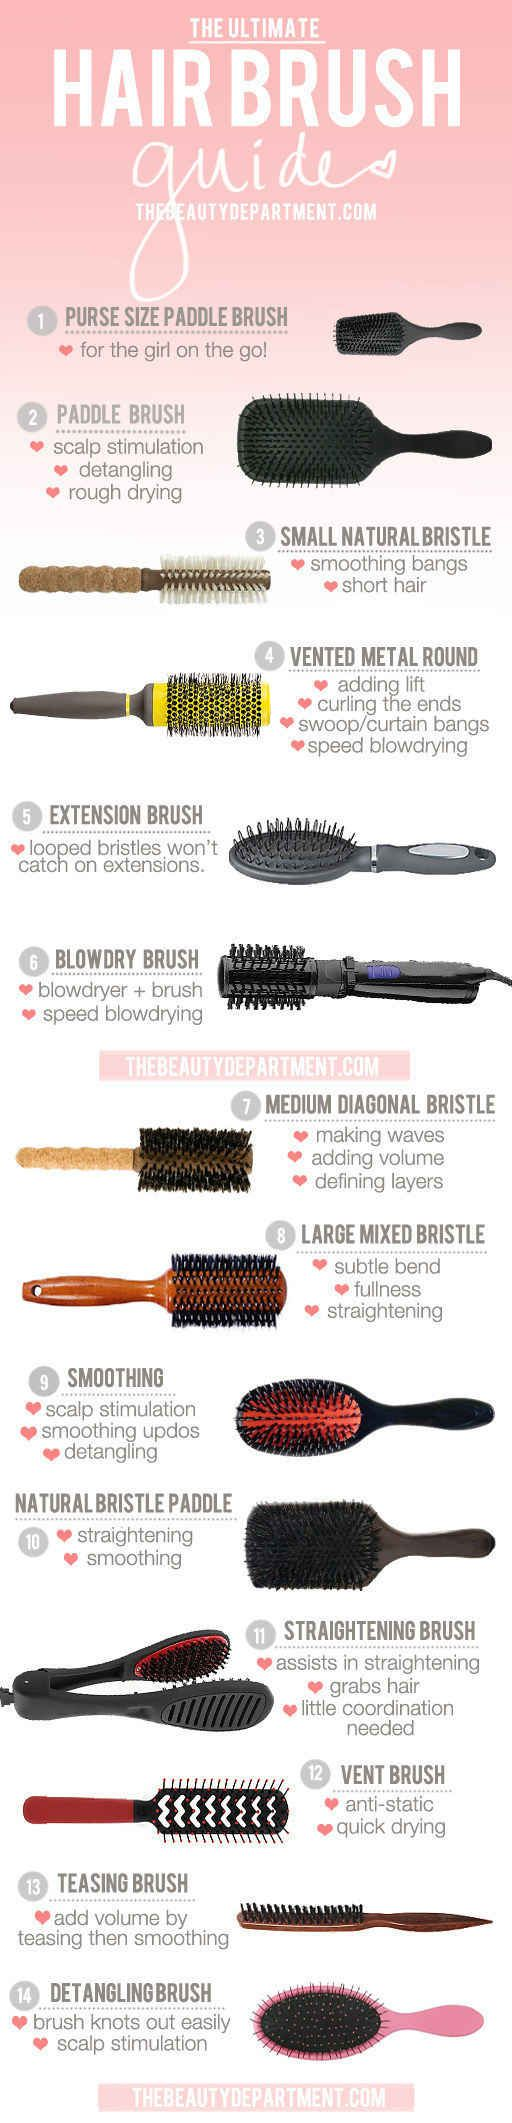 Make sure you have the best brush for your hair. Plus style iron tips and other hair styling tips.